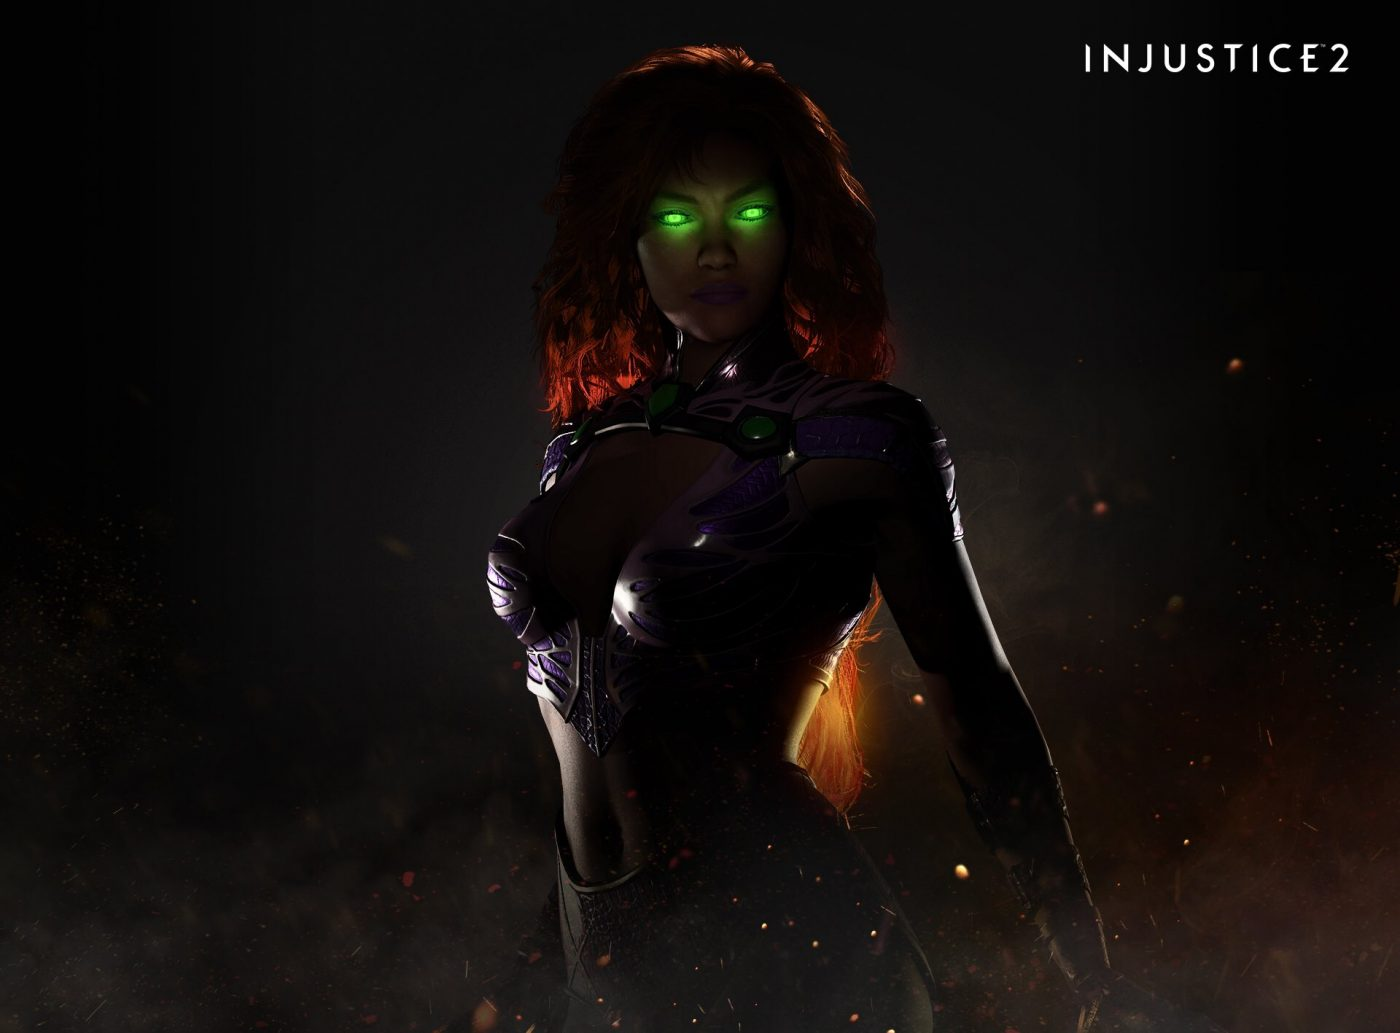 SDCC '17: Say hello to the newest addition to 'Injustice 2': Starfire